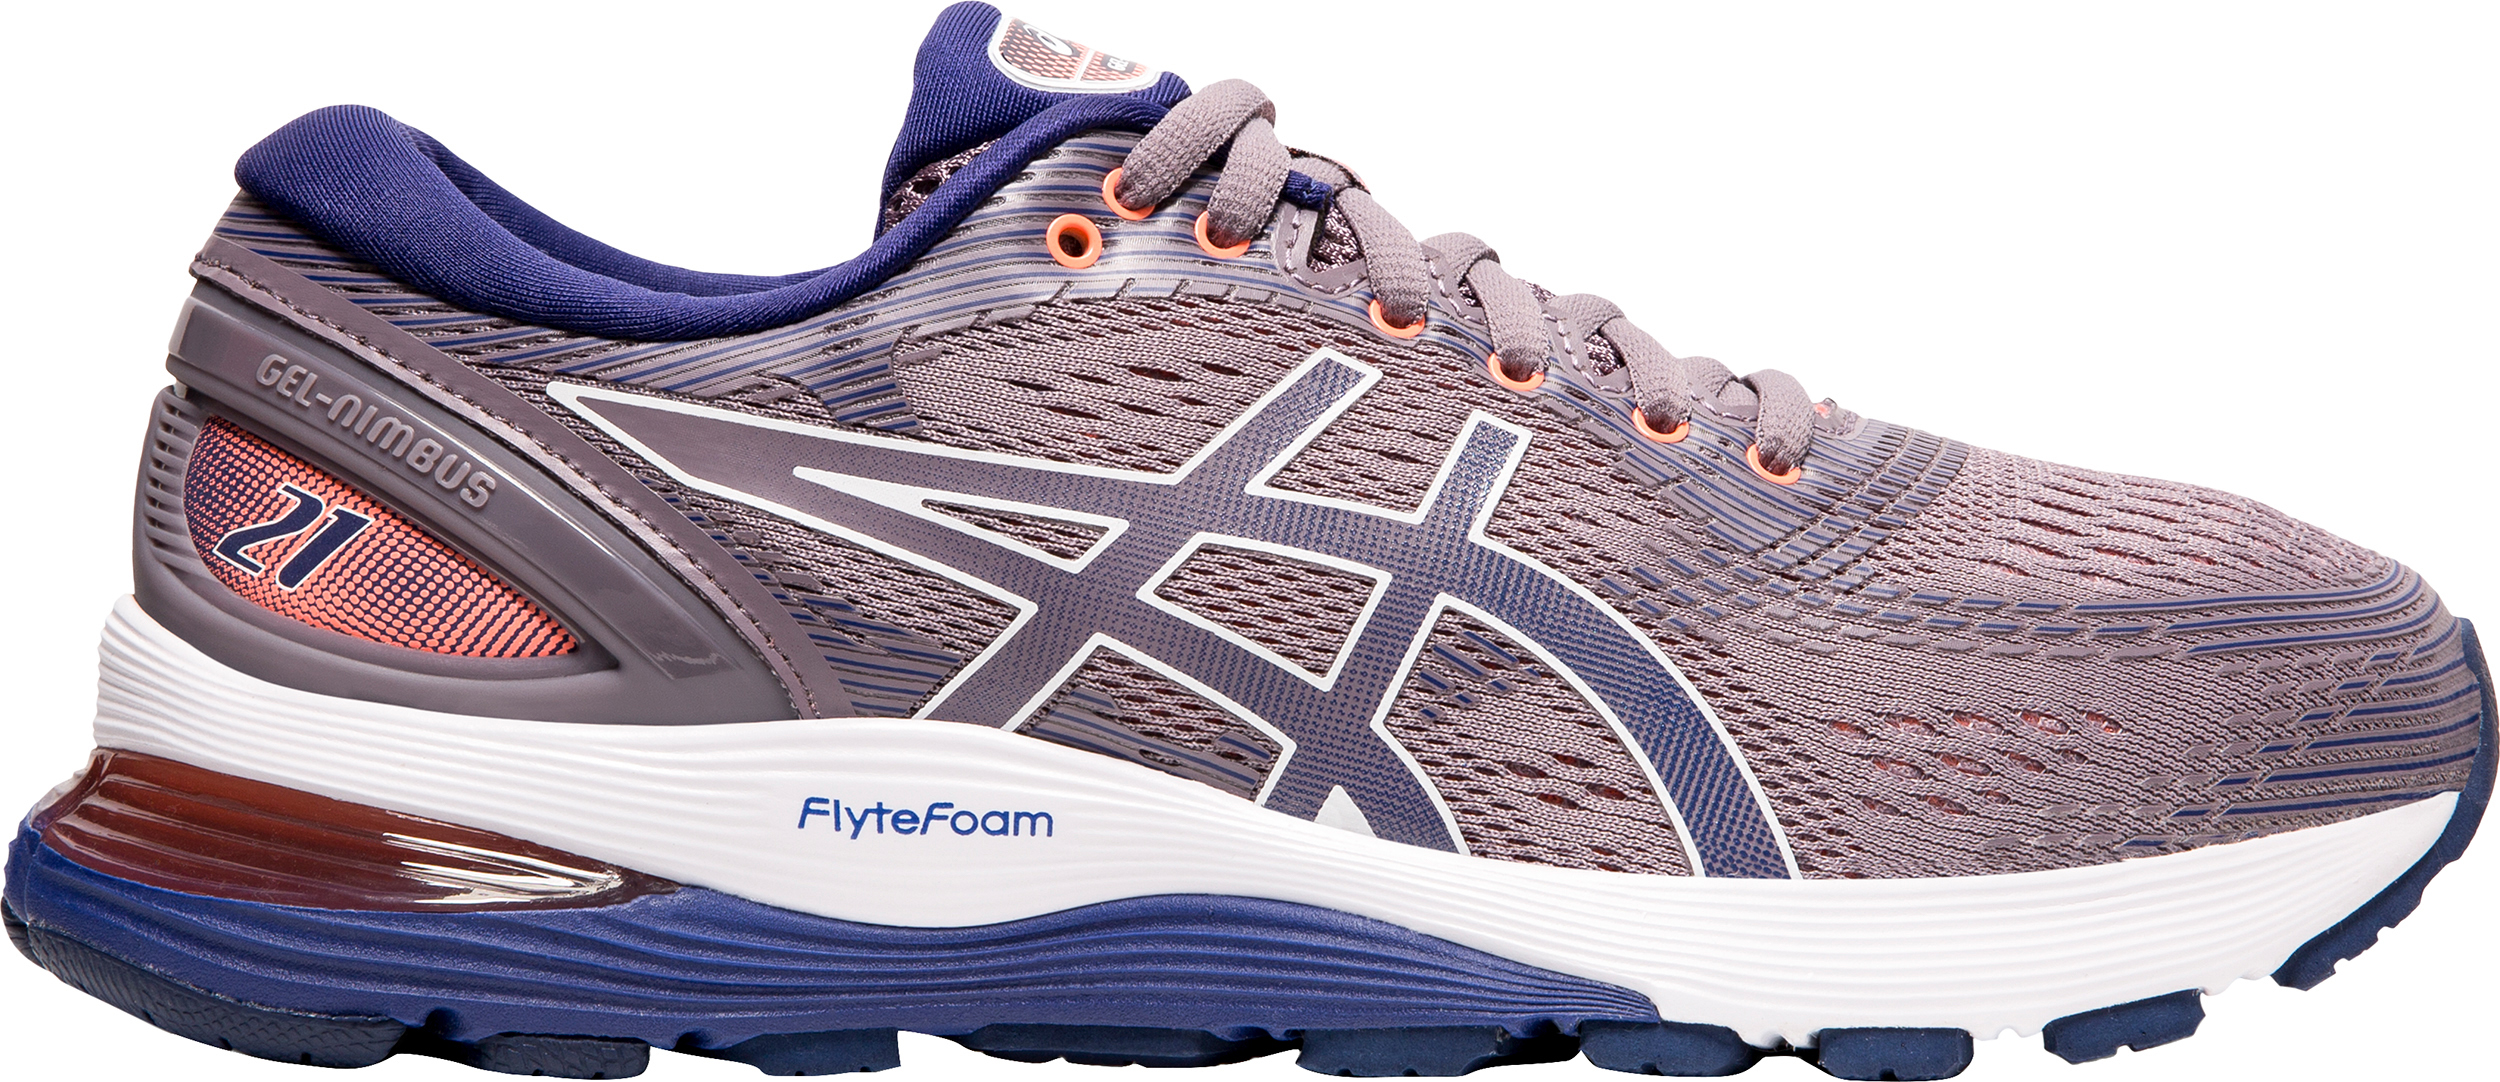 new styles 29962 ae475 Asics Gel-Nimbus 21 Road Running Shoes - Women's